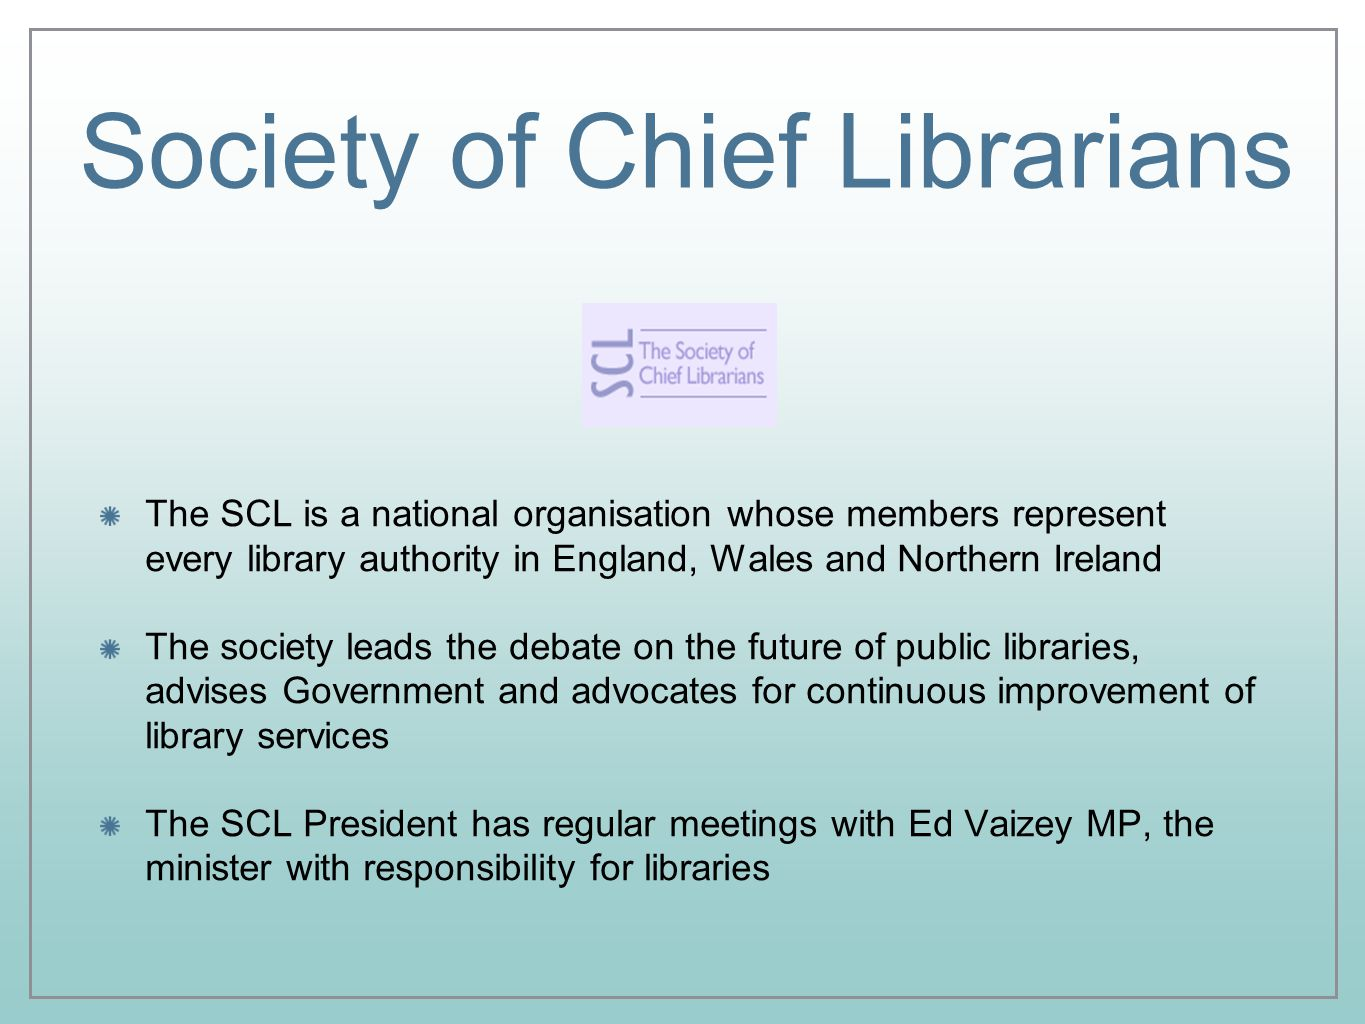 Society of Chief Librarians The SCL is a national organisation whose members represent every library authority in England, Wales and Northern Ireland The society leads the debate on the future of public libraries, advises Government and advocates for continuous improvement of library services The SCL President has regular meetings with Ed Vaizey MP, the minister with responsibility for libraries